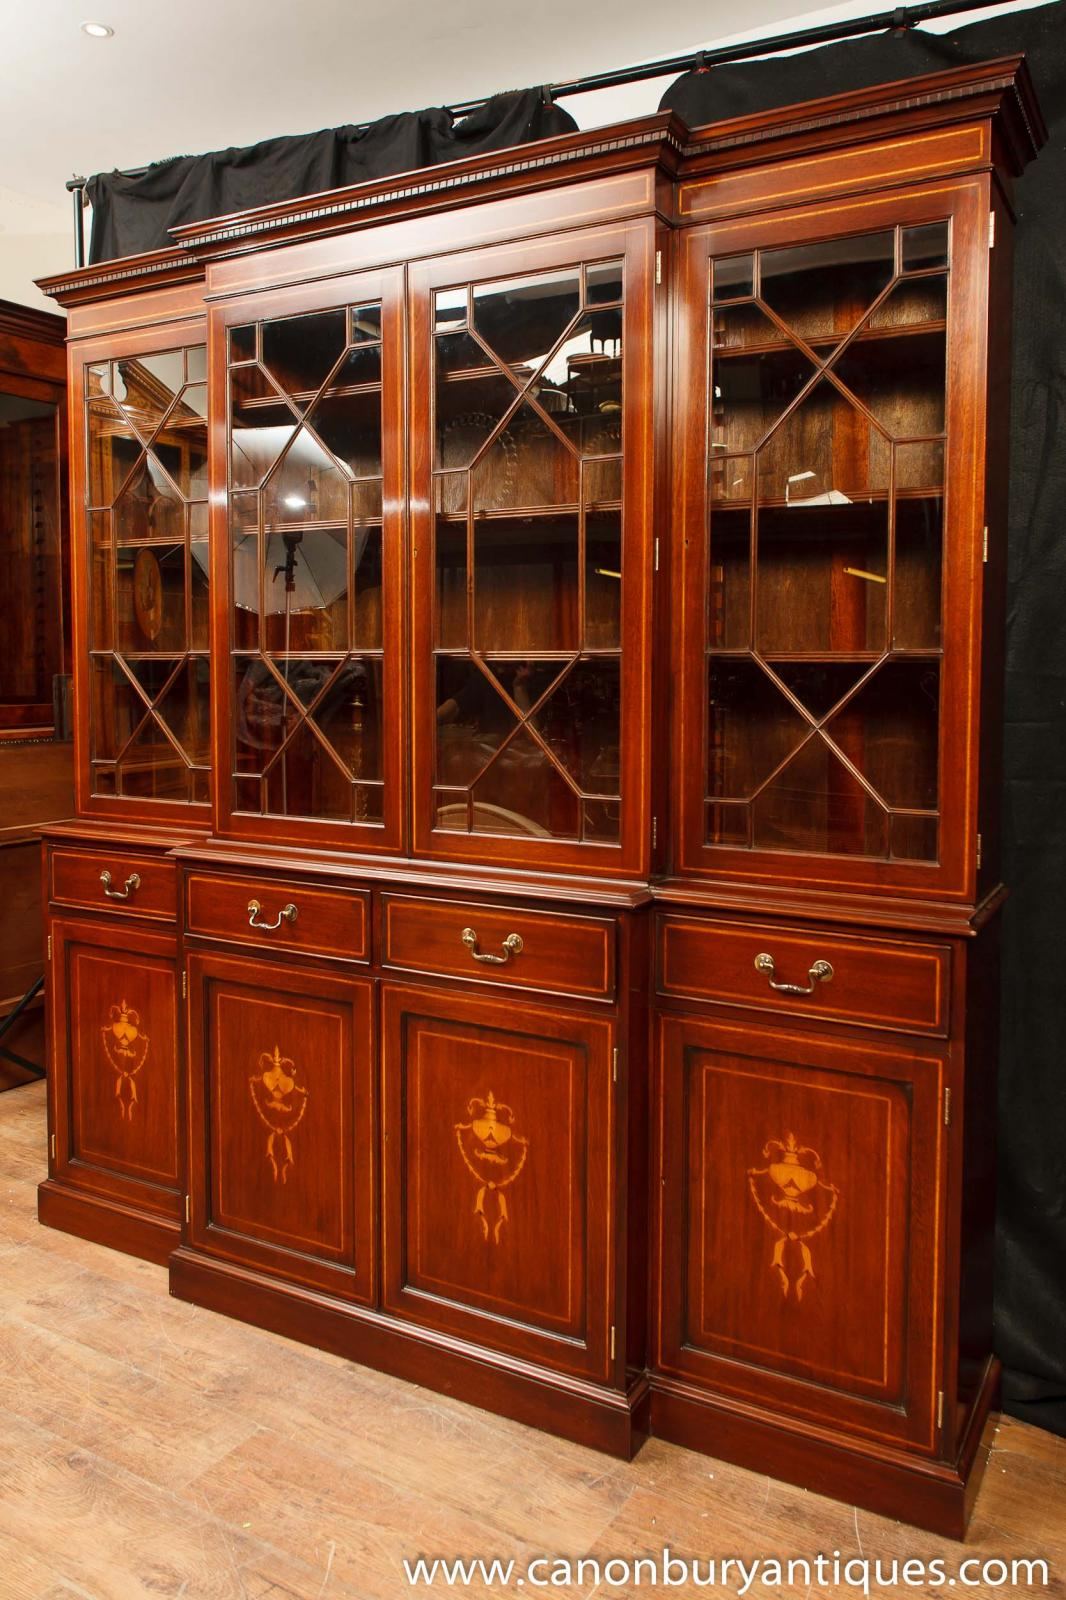 Regency Mahogany Breakfront Bookcase Sheraton Inlay  : Regency20Mahogany20Breakfront20Bookcase20Sheraton20Inlay20Bookcases 1372394589 zoom 77 from www.ebay.co.uk size 1066 x 1600 jpeg 243kB